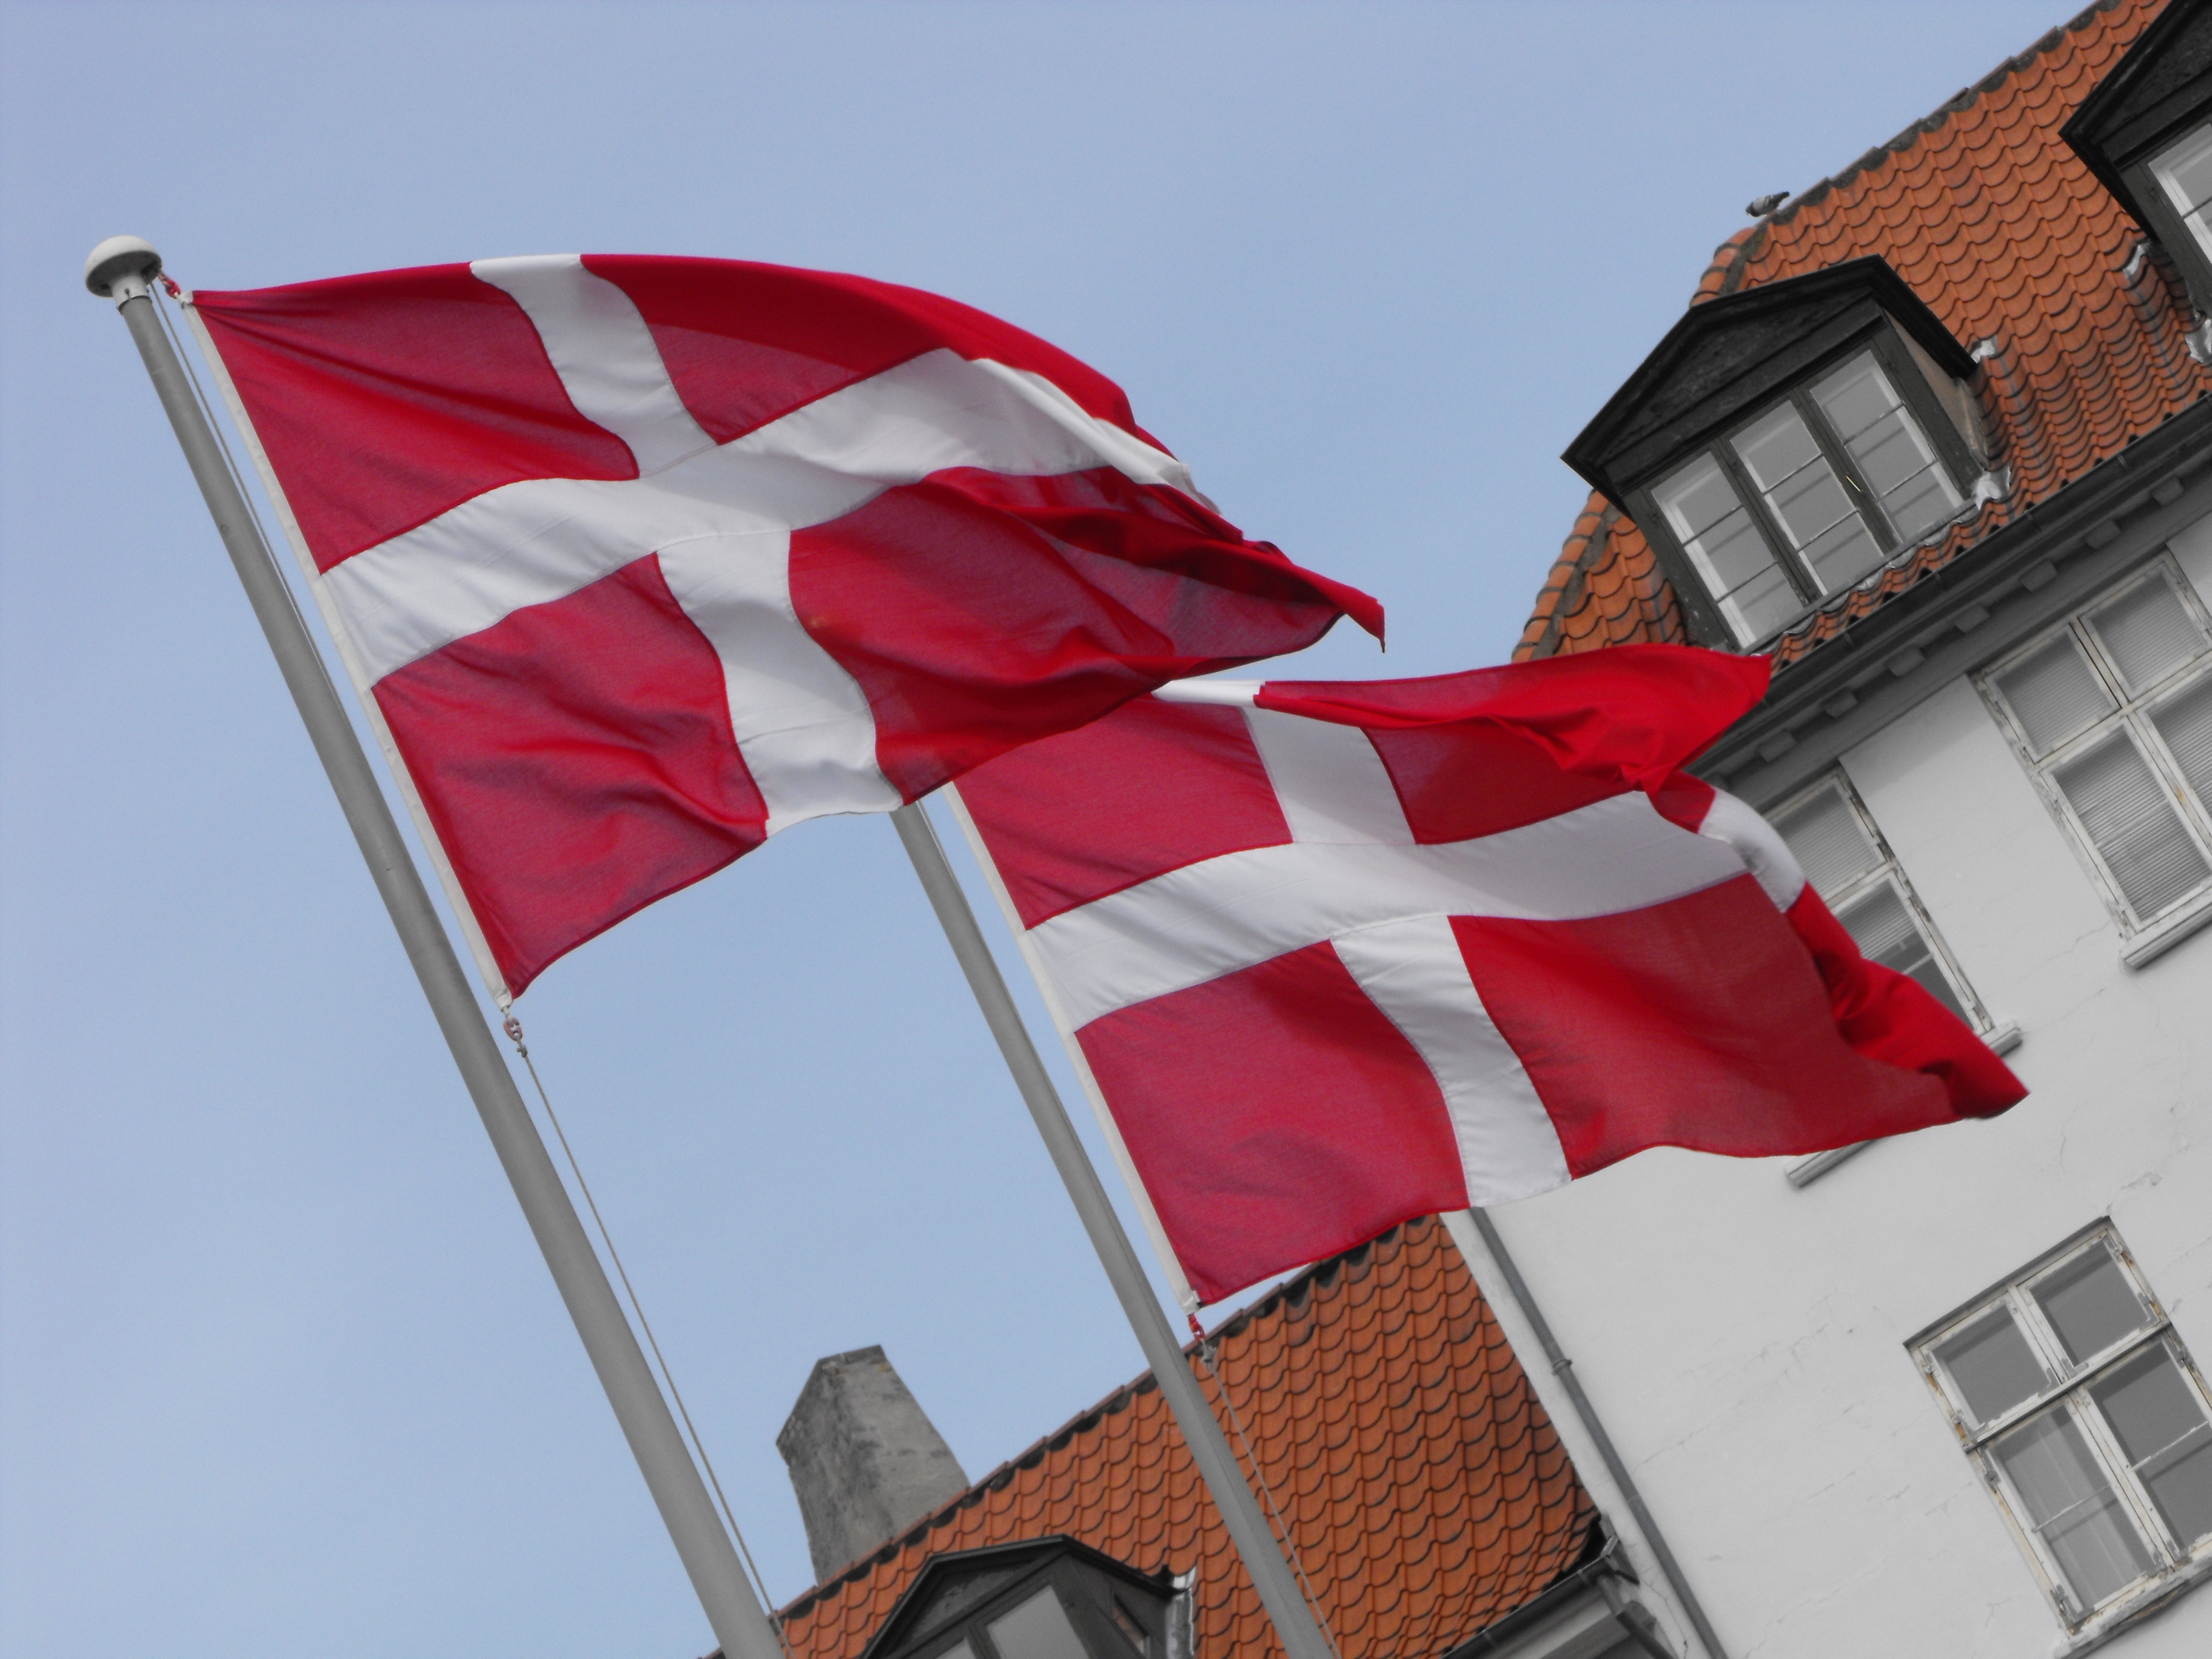 COVID-19: Denmark curbs movement at border with Germany